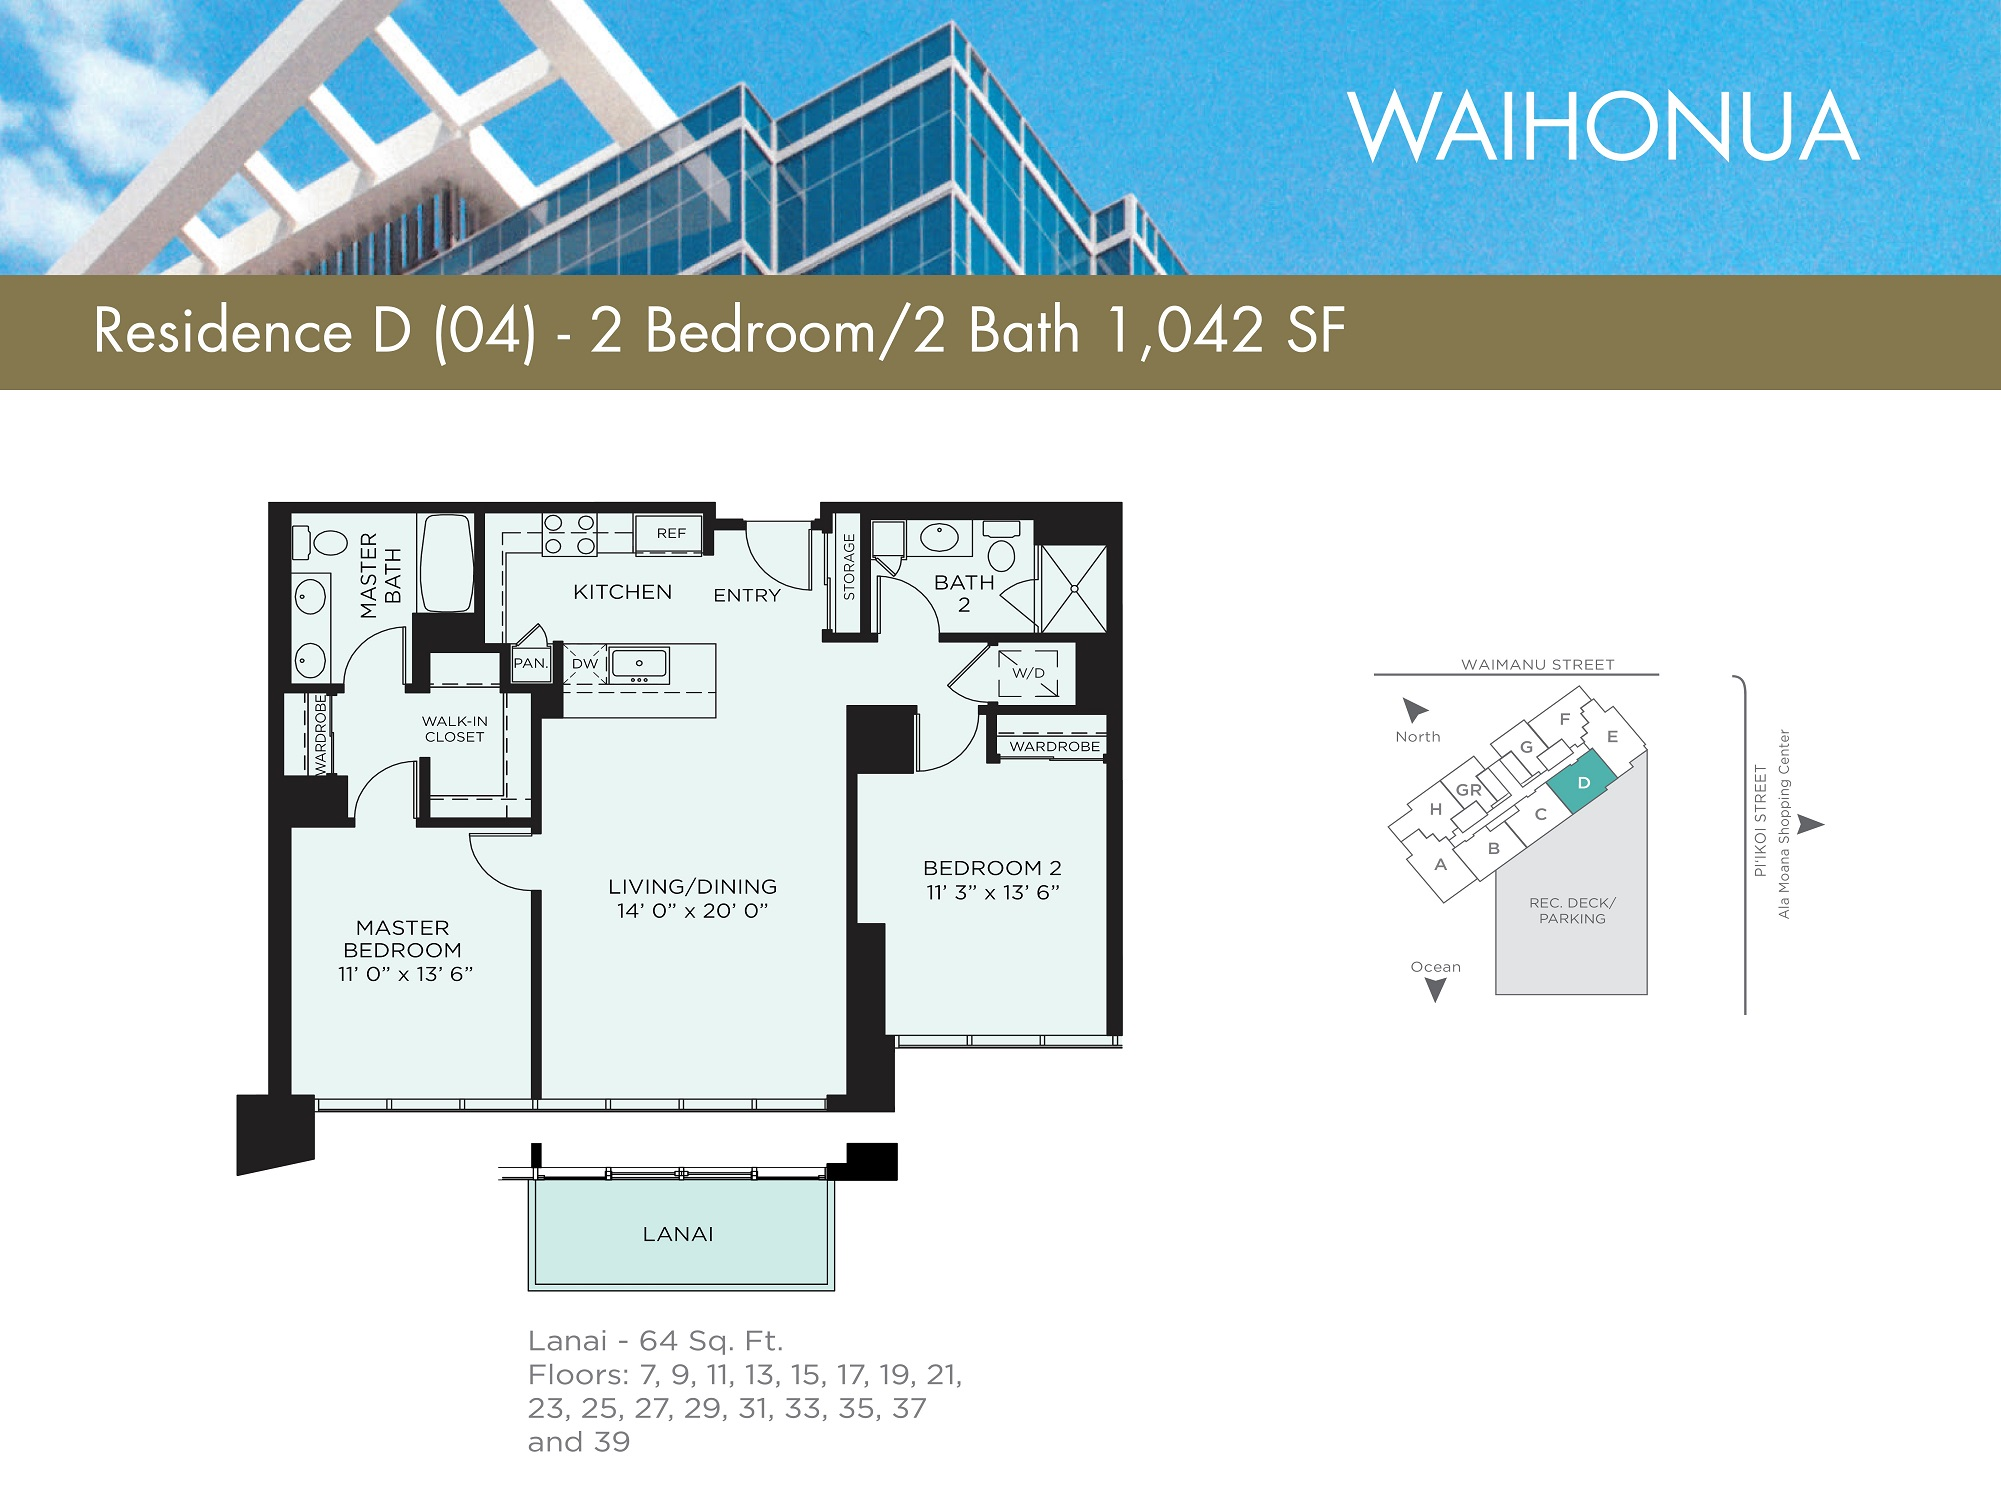 Waihonua 04 Unit (D) Floor Plan - Estimated Monthly Maintenance fee is $932.00